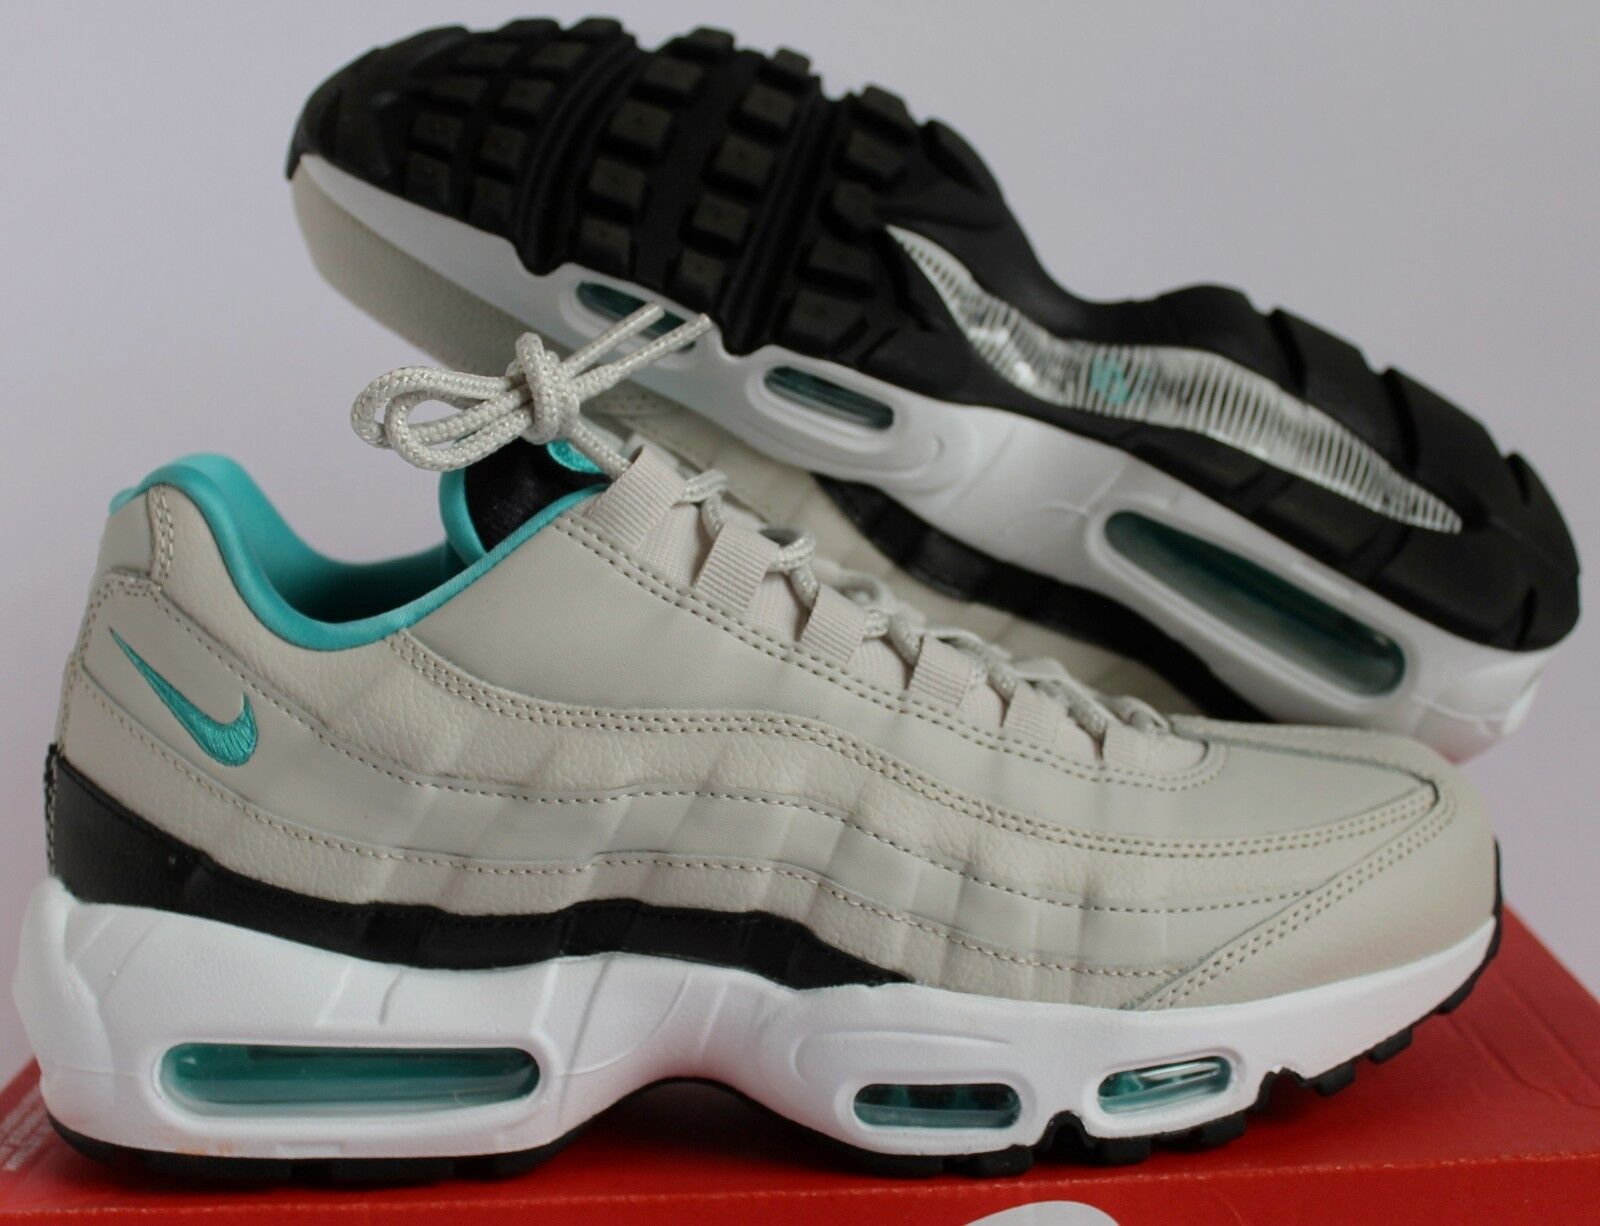 NIKE AIR MAX 95 ESSENTIAL LIGHT BONE-SPORT TURQUOISE-BLACK SZ 8.5 [749766-027]